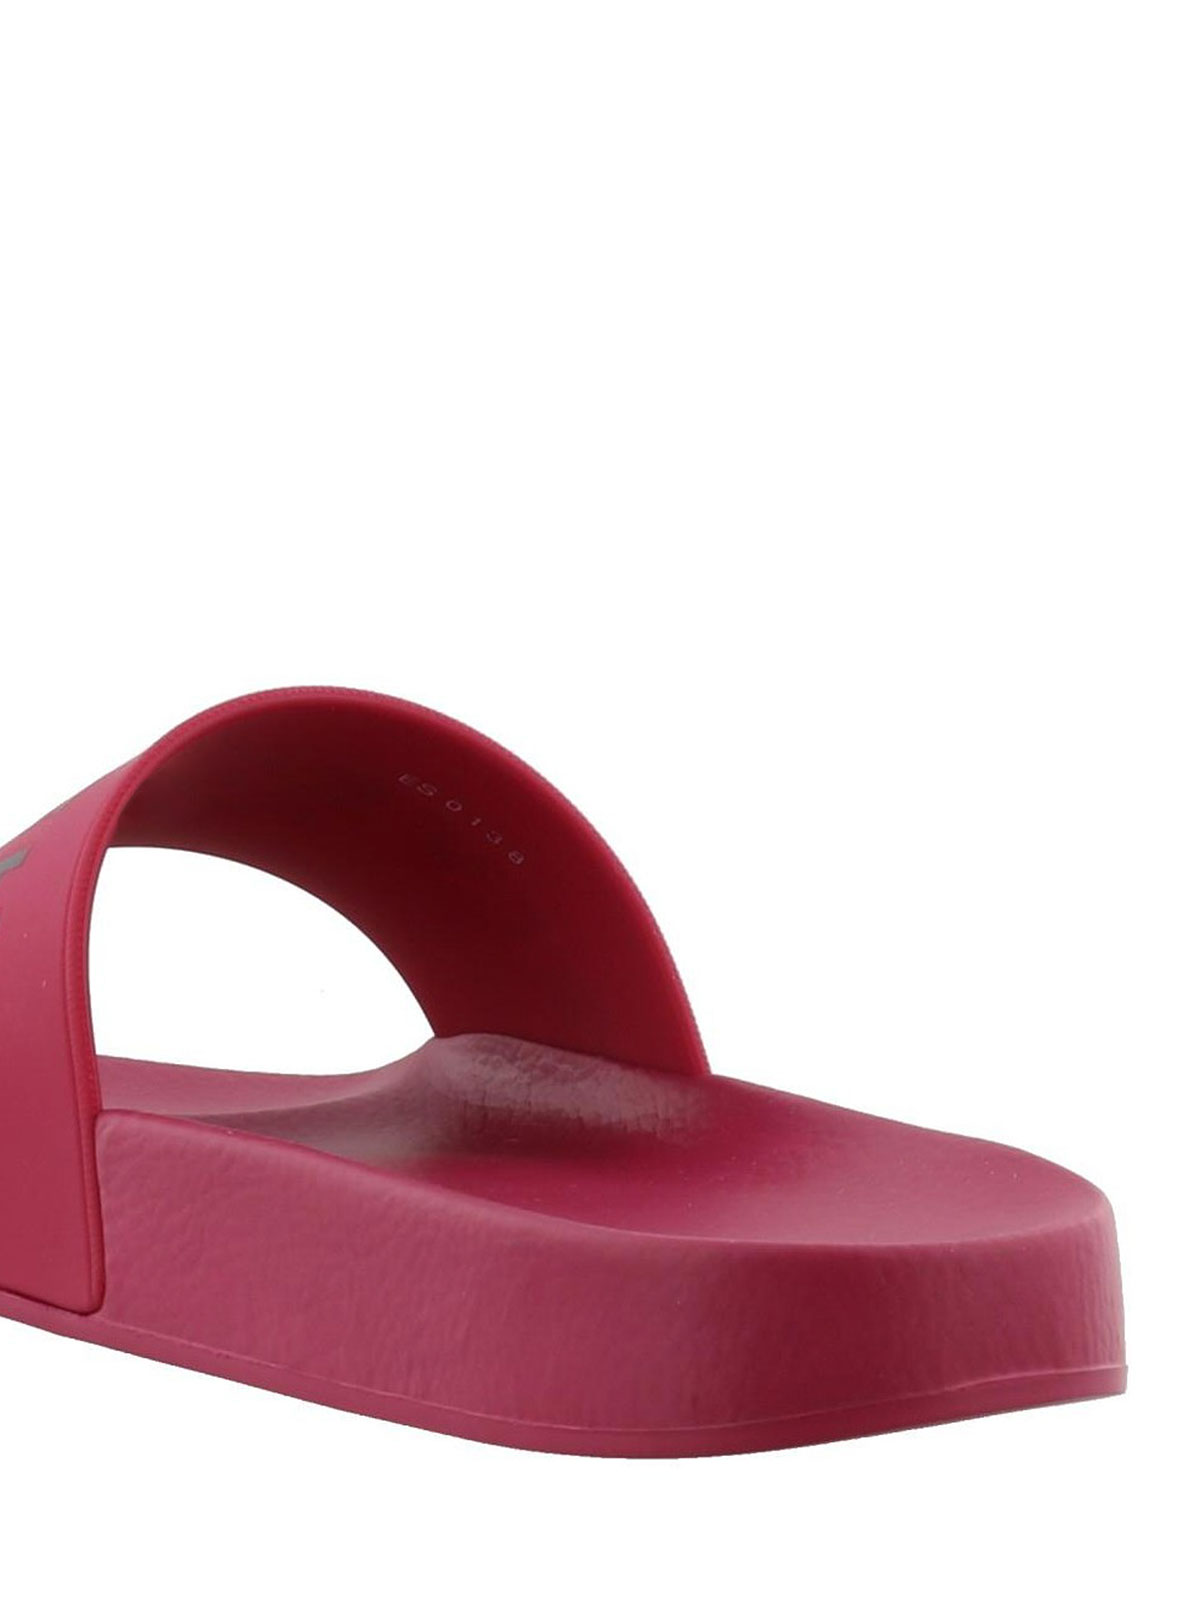 4df8bdb0bf Givenchy - Givenchy Paris red rubber slides - sandals - BE08209809 653